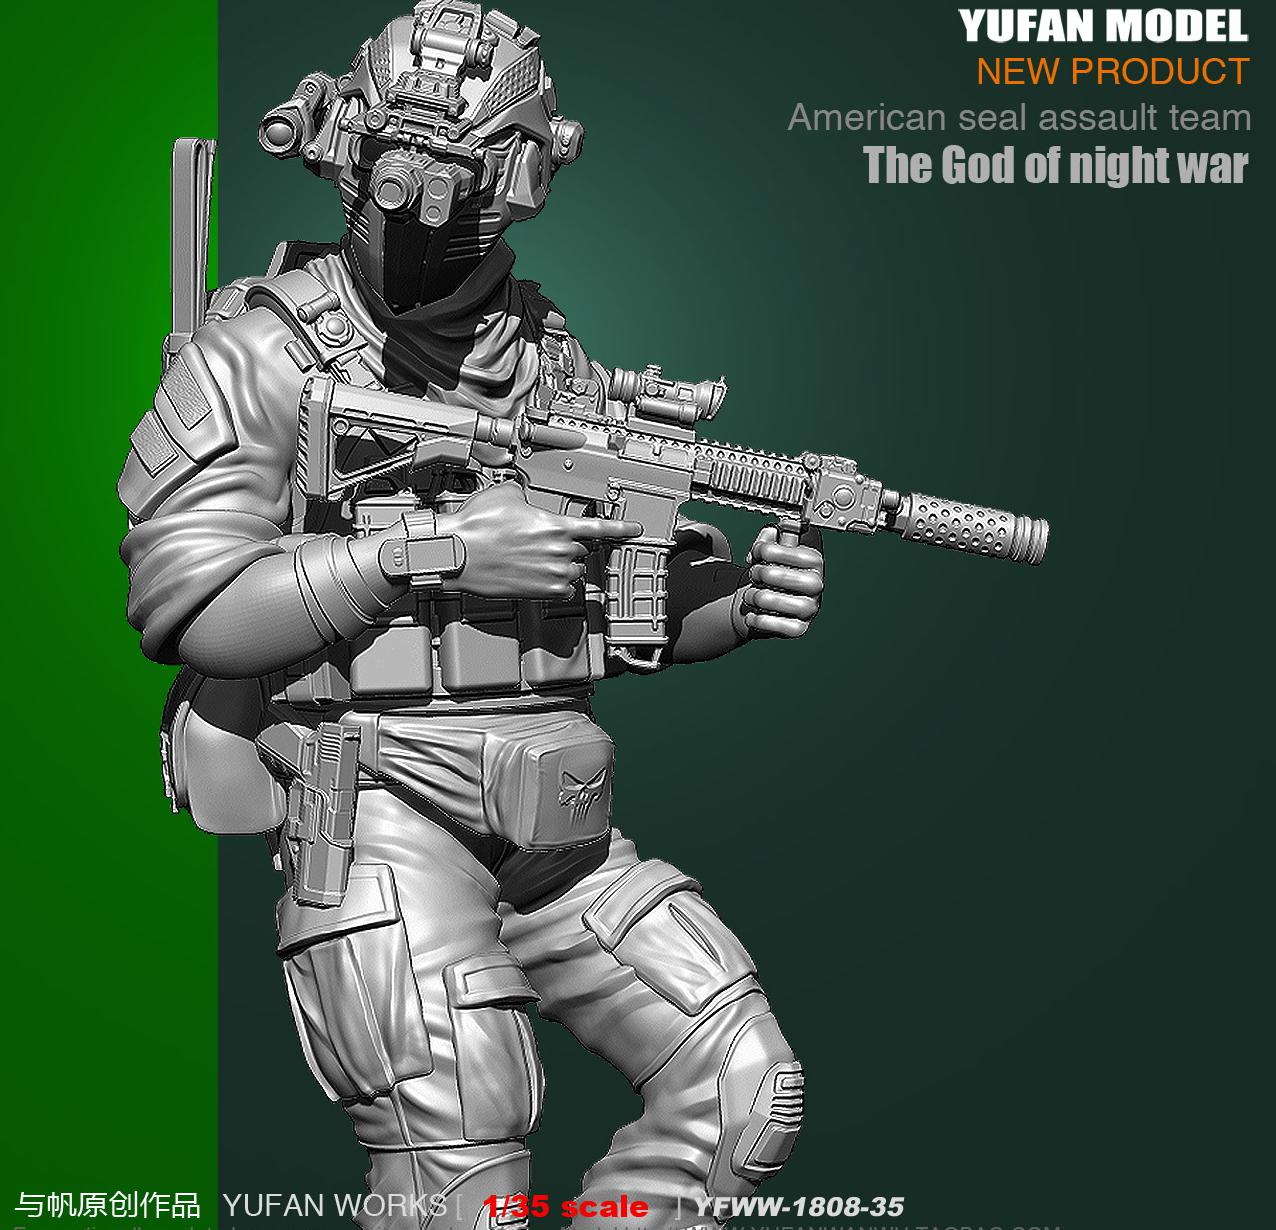 Yufan Model 1/35 Resin Soldier  Assembly Figura US Army YFWW35-1808